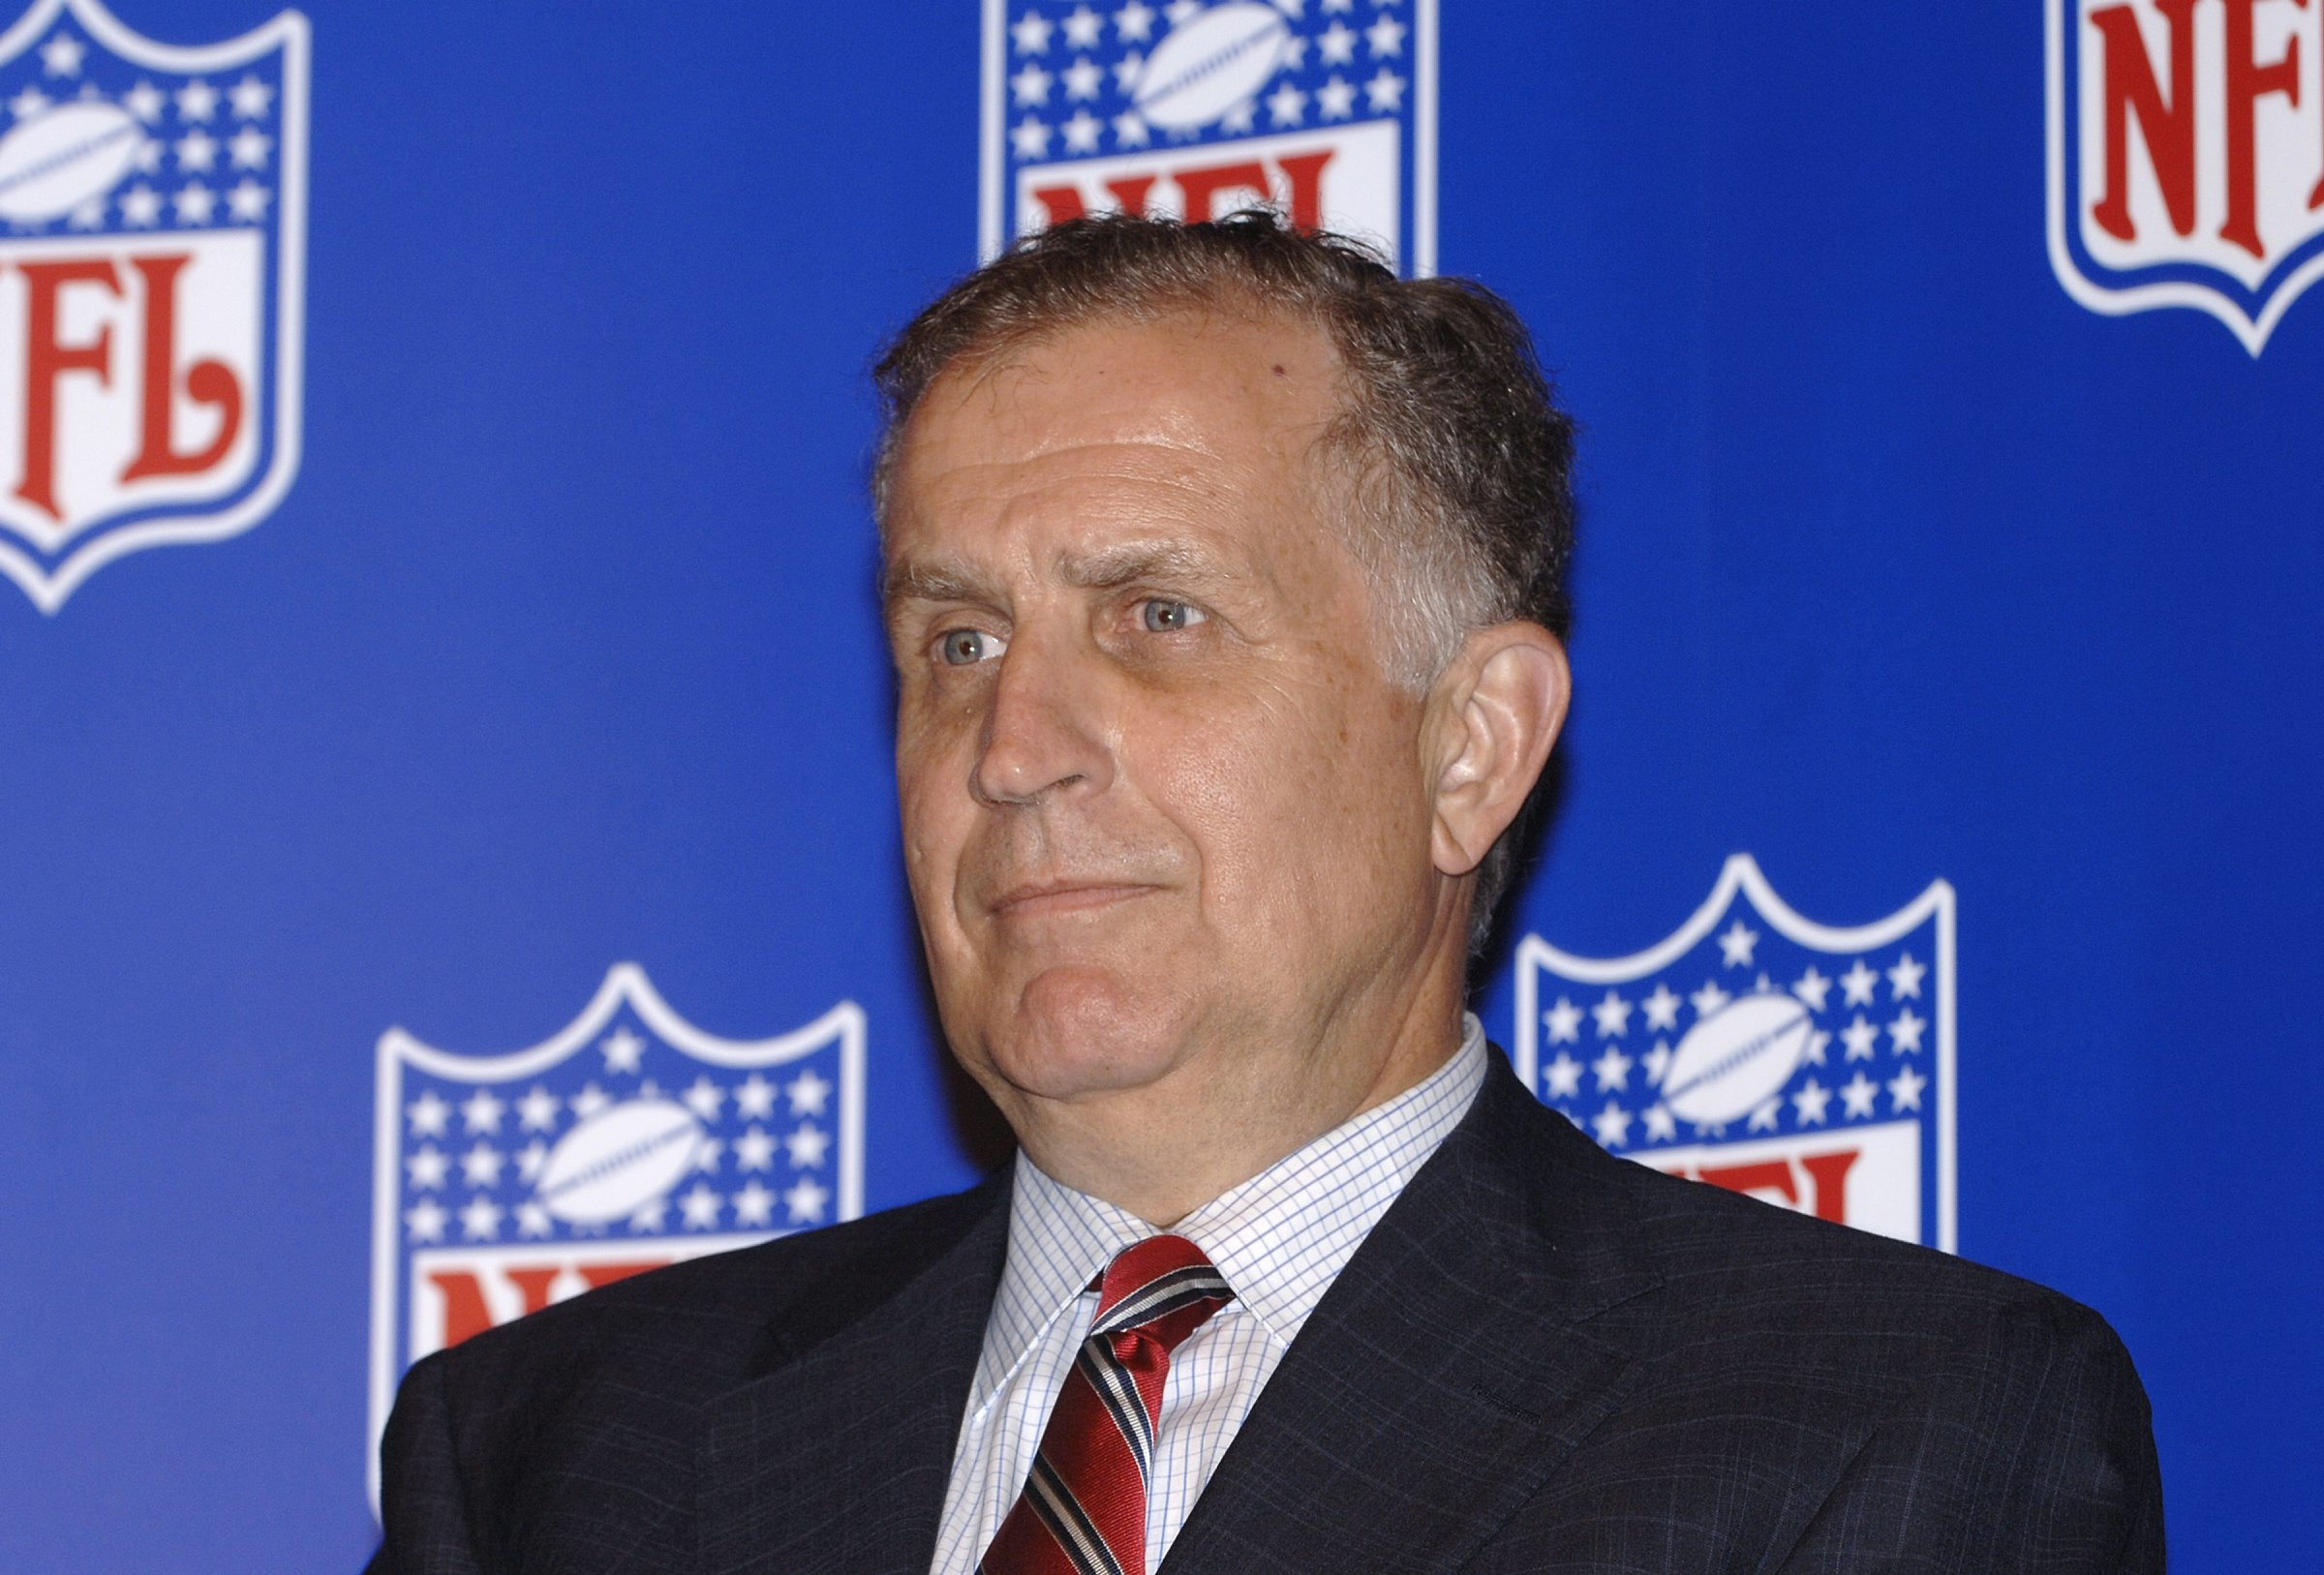 """Frontline's """"League of Denial"""" shows evidence that the NFL ignored medical research on the dangers of concussions during Paul Tagliabue's time as commissioner."""